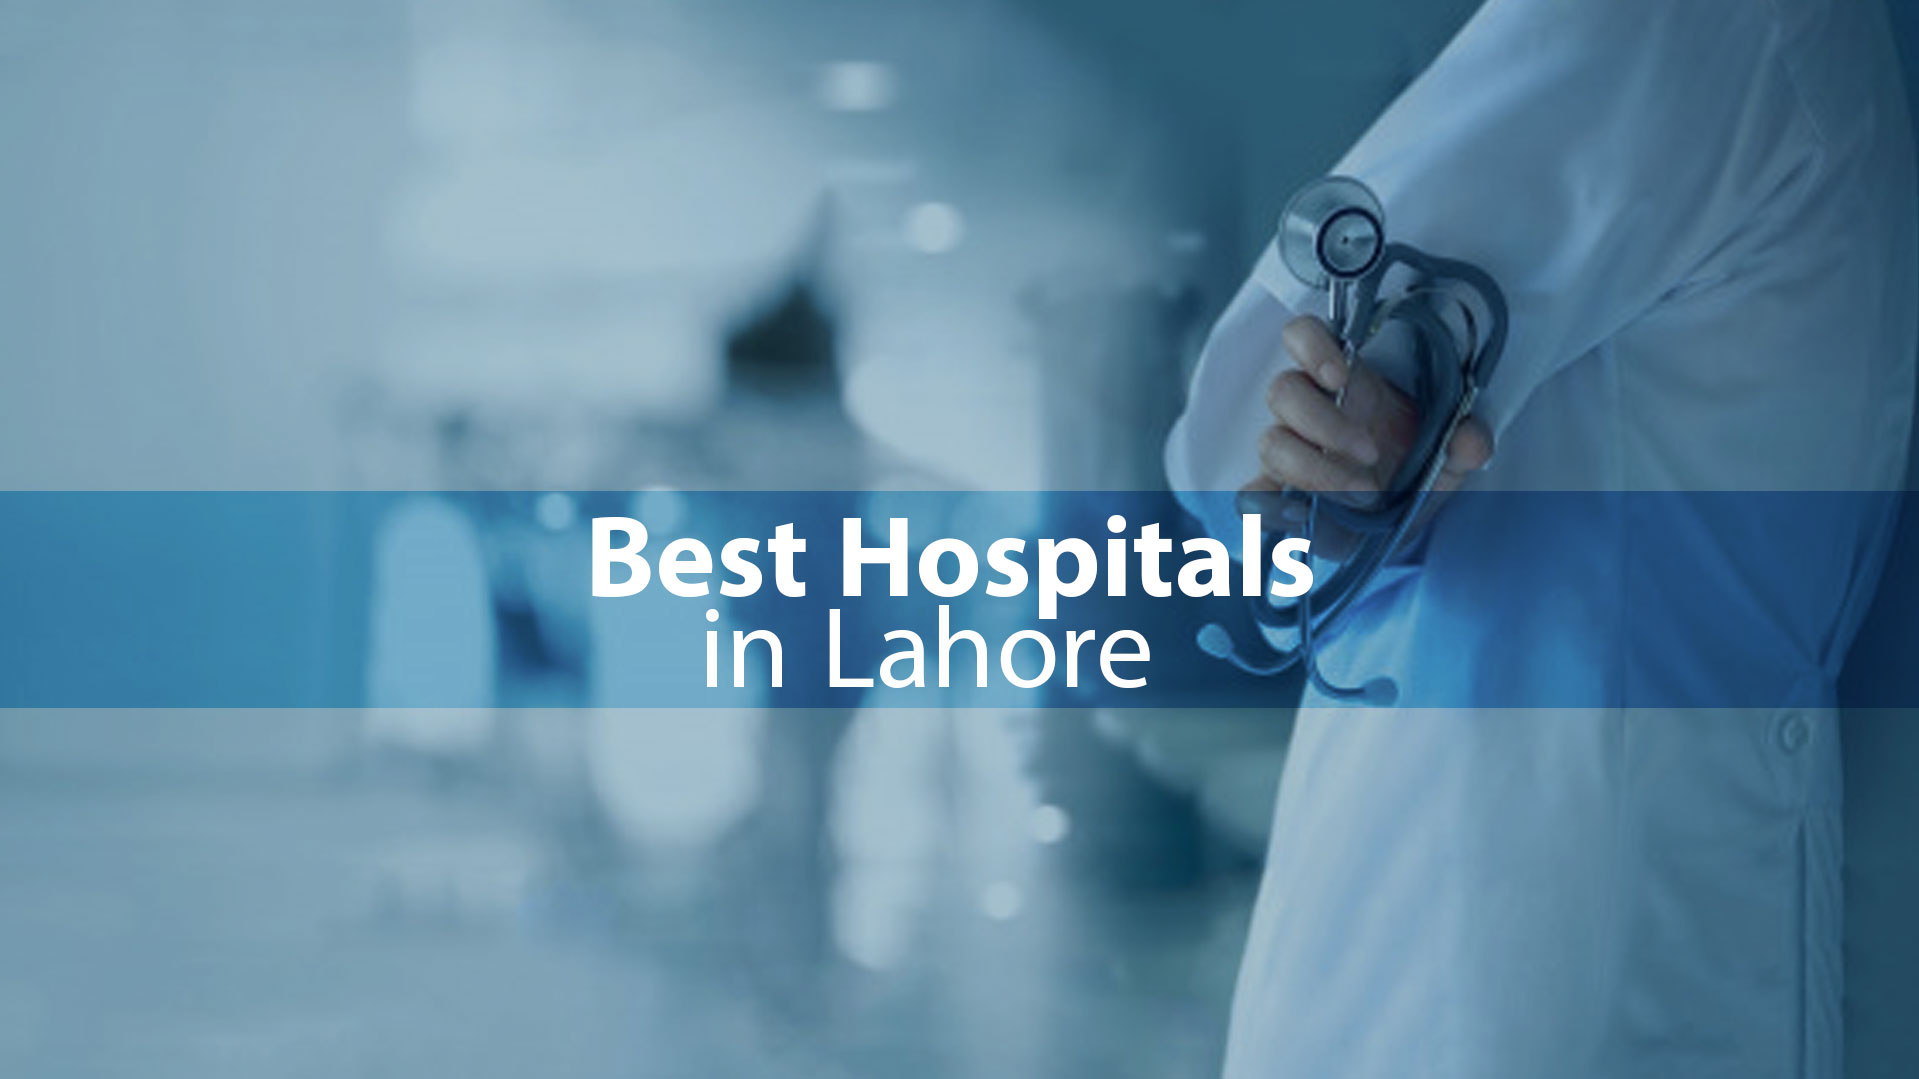 Best Hospitals in Lahore